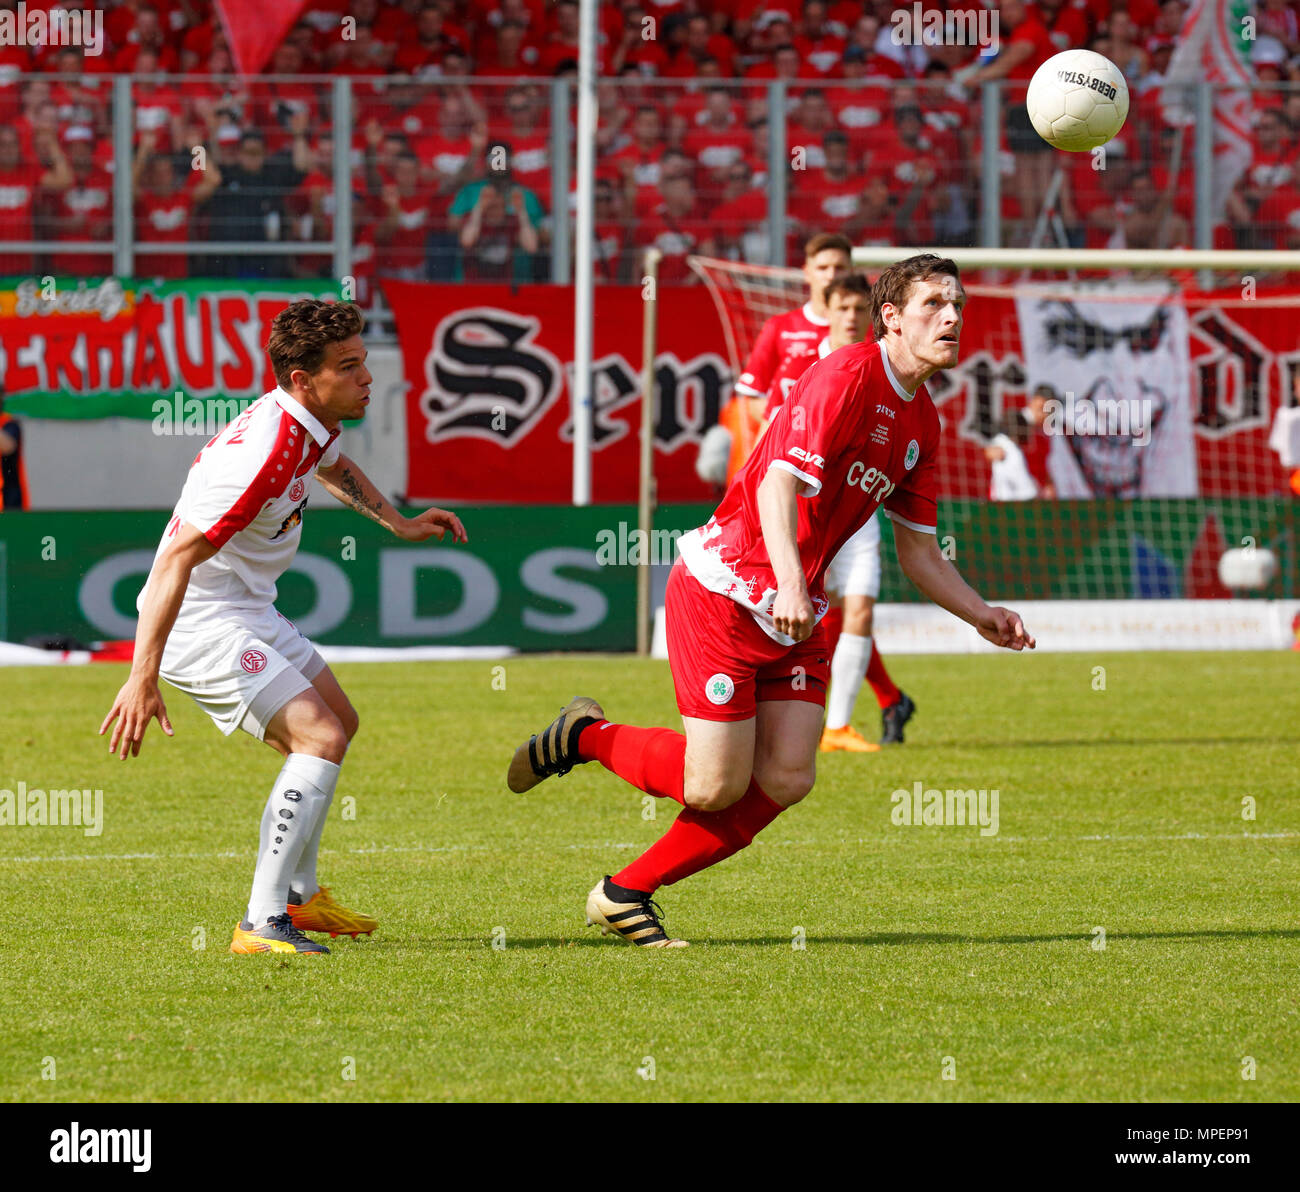 sports, football, Lower Rhine Cup, 2017/2018, final, Rot-Weiss Oberhausen vs Rot Weiss Essen 2:1, Stadium Niederrhein Oberhausen, scene of the match, Robert Flessers (RWO) right and Kevin Grund (RWE) - Stock Image